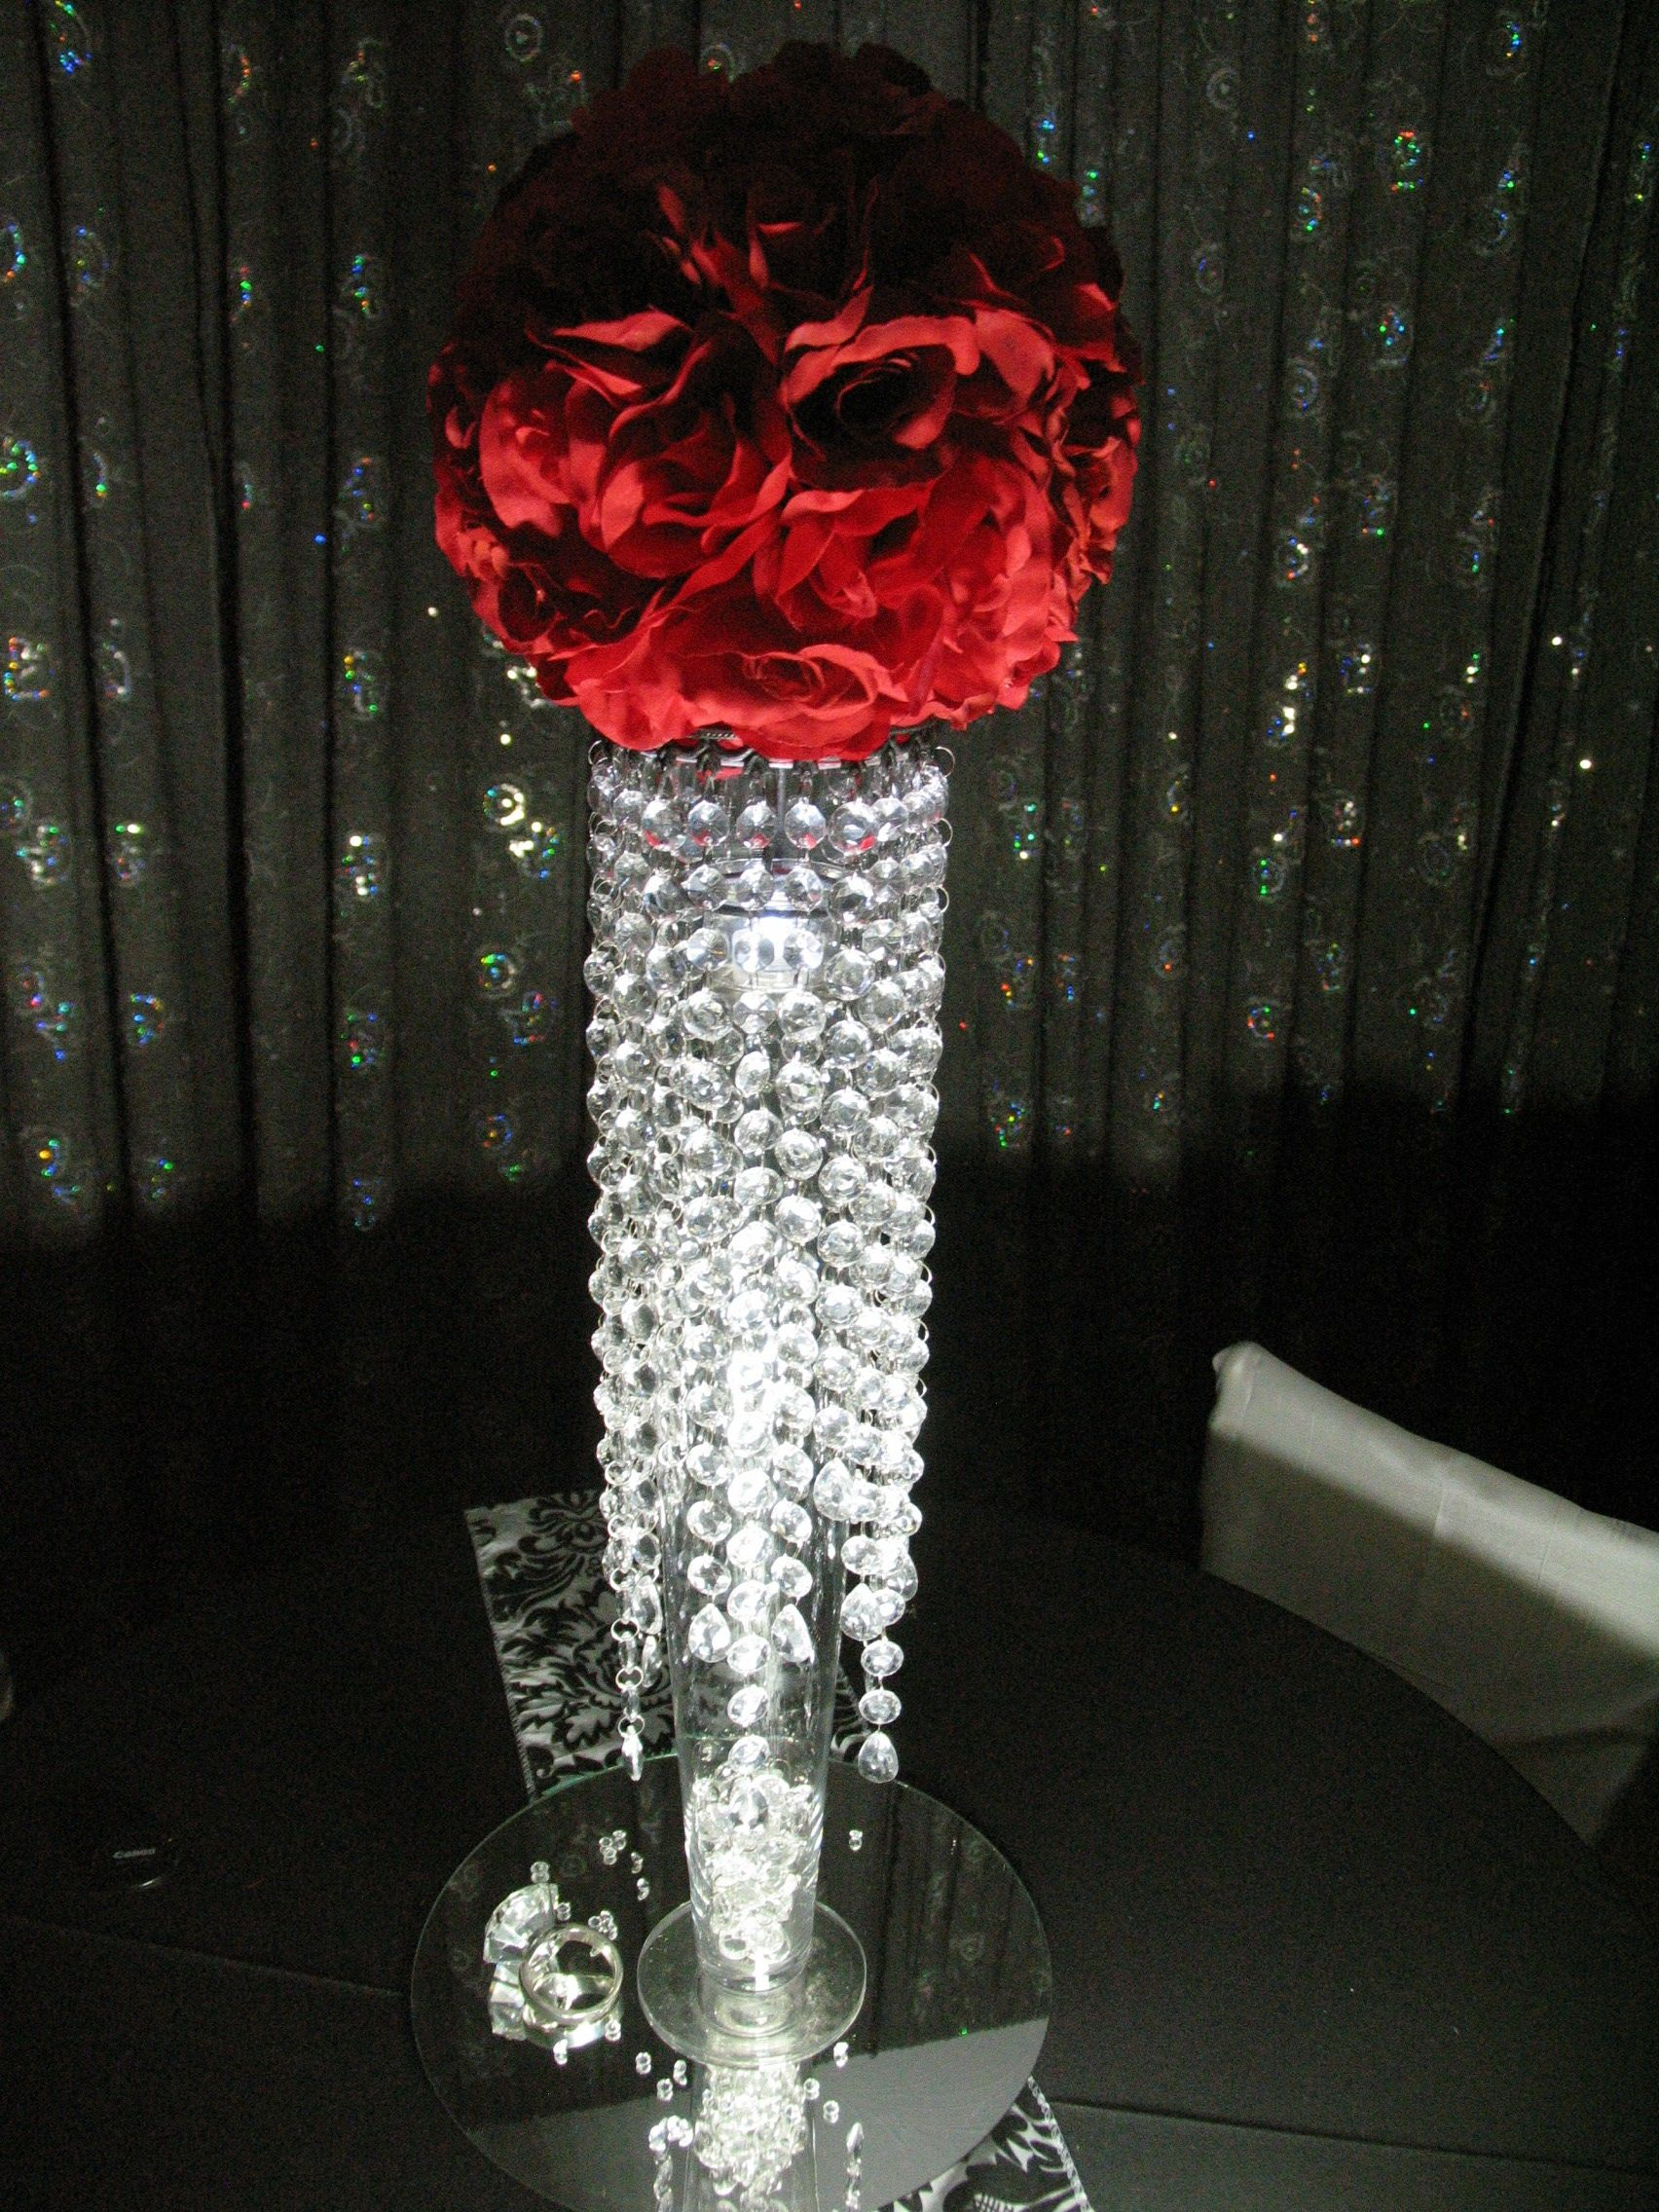 Tall Crystal Vases With Deep Red Roses For Wedding Centerpieces Crystal Centerpiece W Wedding Centerpieces Crystal Wedding Decor Wedding Centerpieces Diy Red